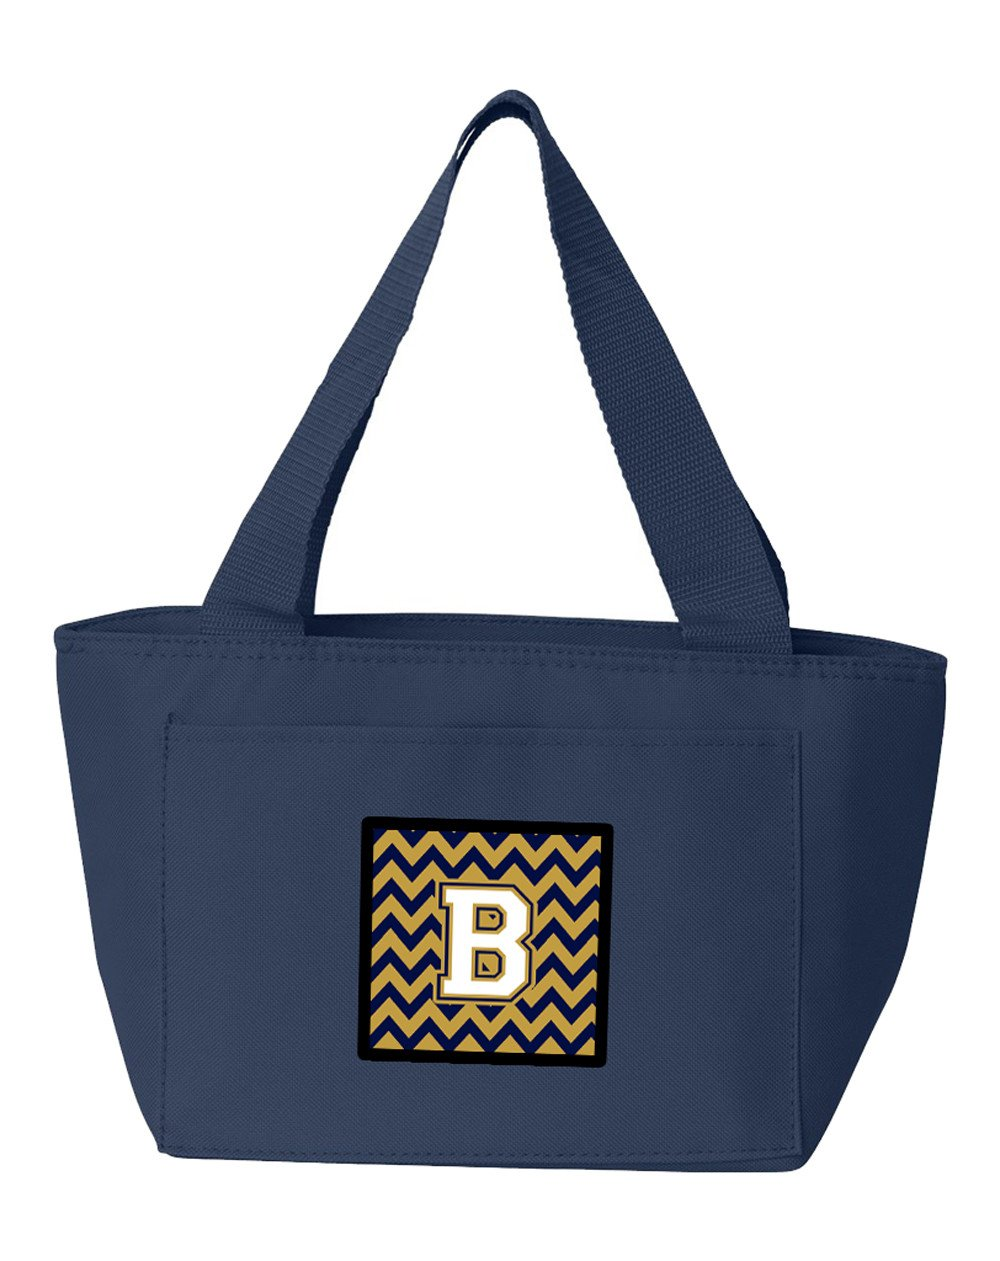 Letter B Chevron Navy Blue and Gold Lunch Bag CJ1057-BNA-8808 by Caroline's Treasures